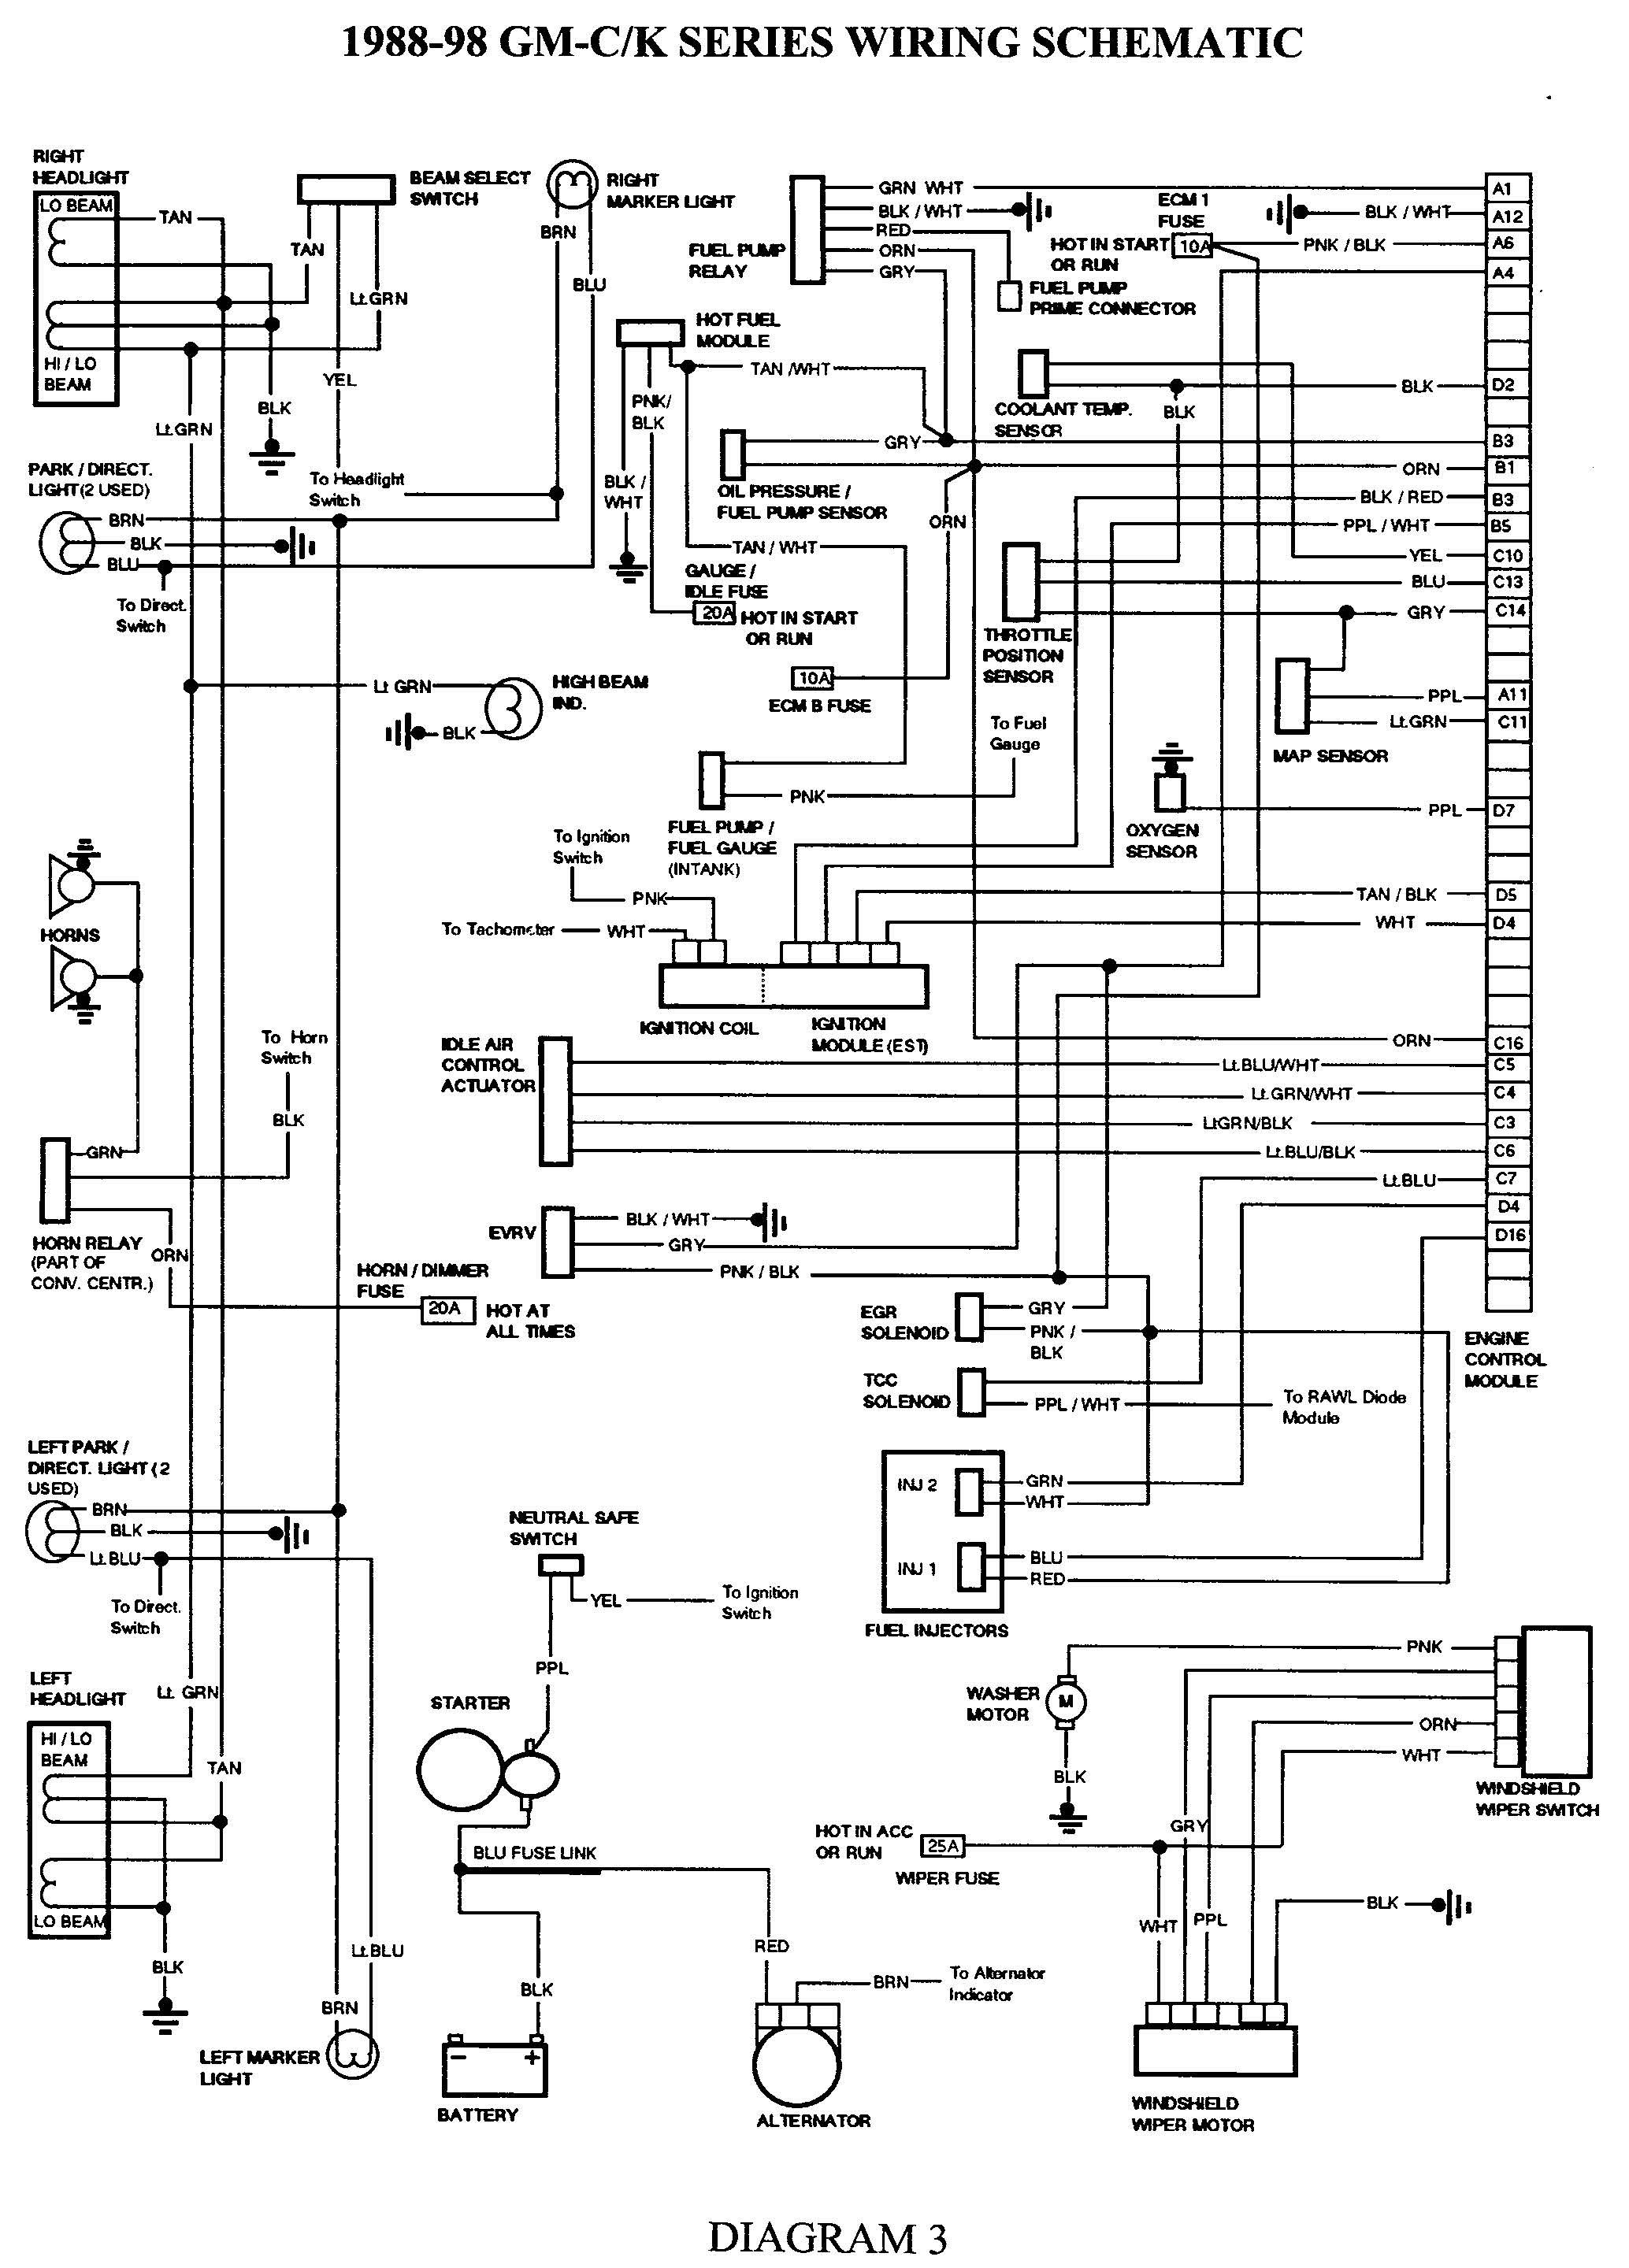 1986 chevrolet c10 5 7 v8 engine wiring diagram chevrolet c 1500 1986 chevy truck ignition switch wiring diagram 1986 chevy c10 engine wiring diagram [ 2068 x 2880 Pixel ]